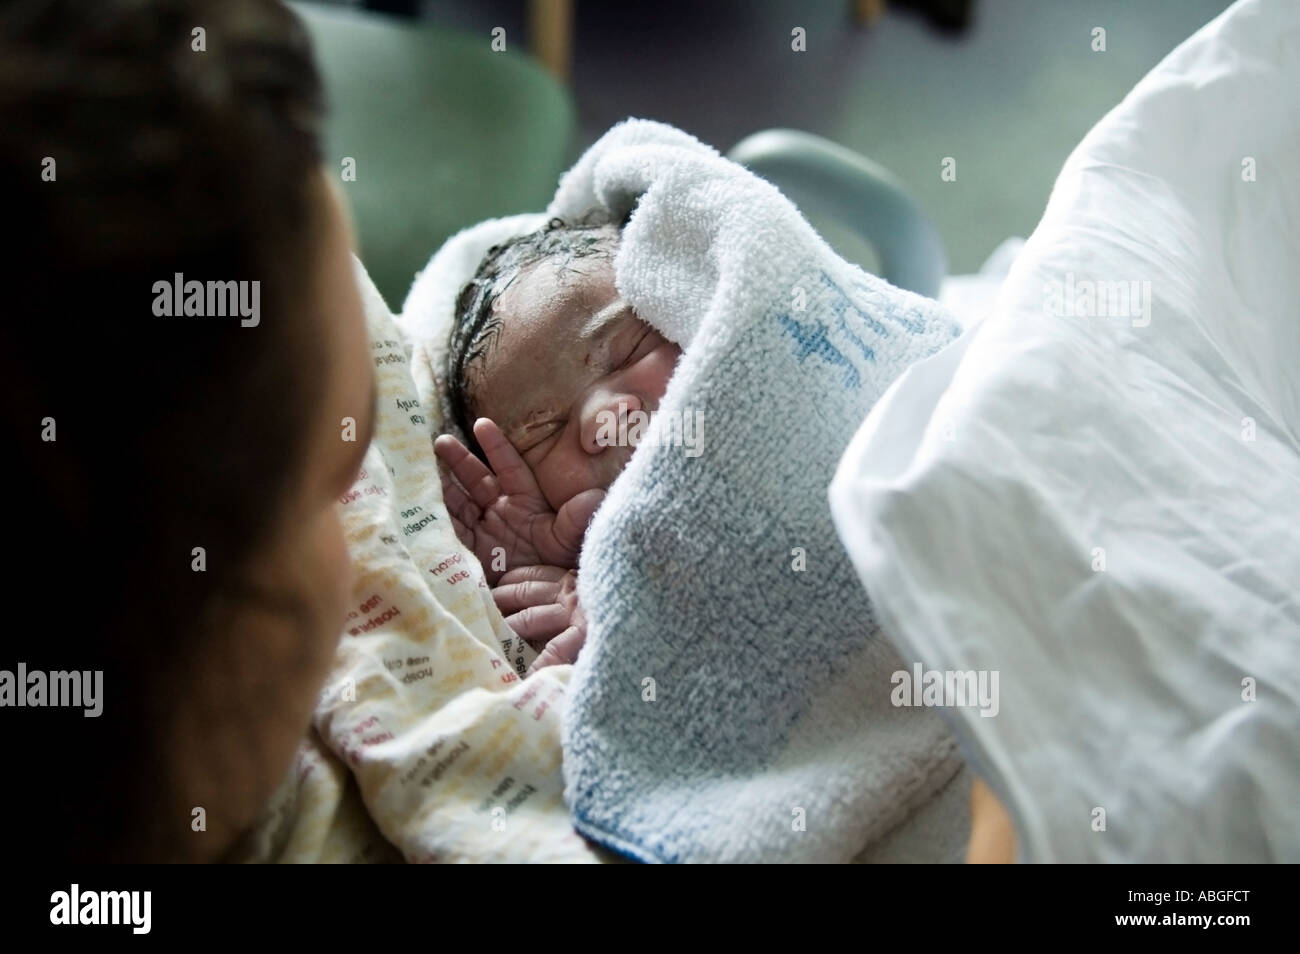 Newborn baby girl is just born at hospital. She is just 10 minutes old, wrapped in towel she is in her mum's arm. Stock Photo